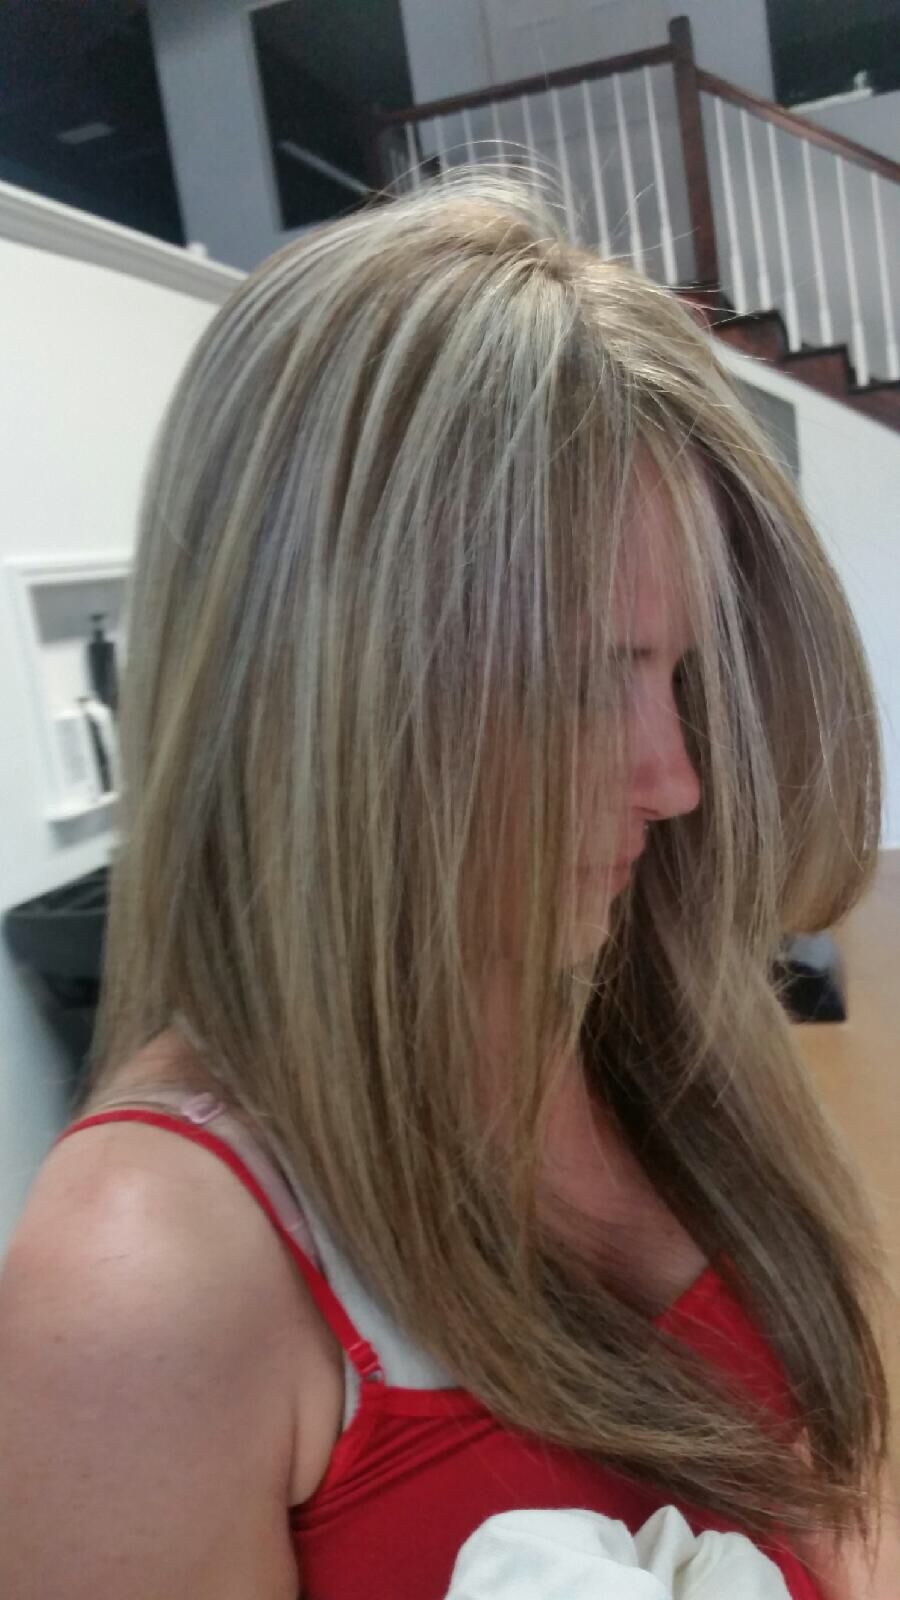 Full Highlights 29 For Shampoo Haircut And Style 60 Value 98